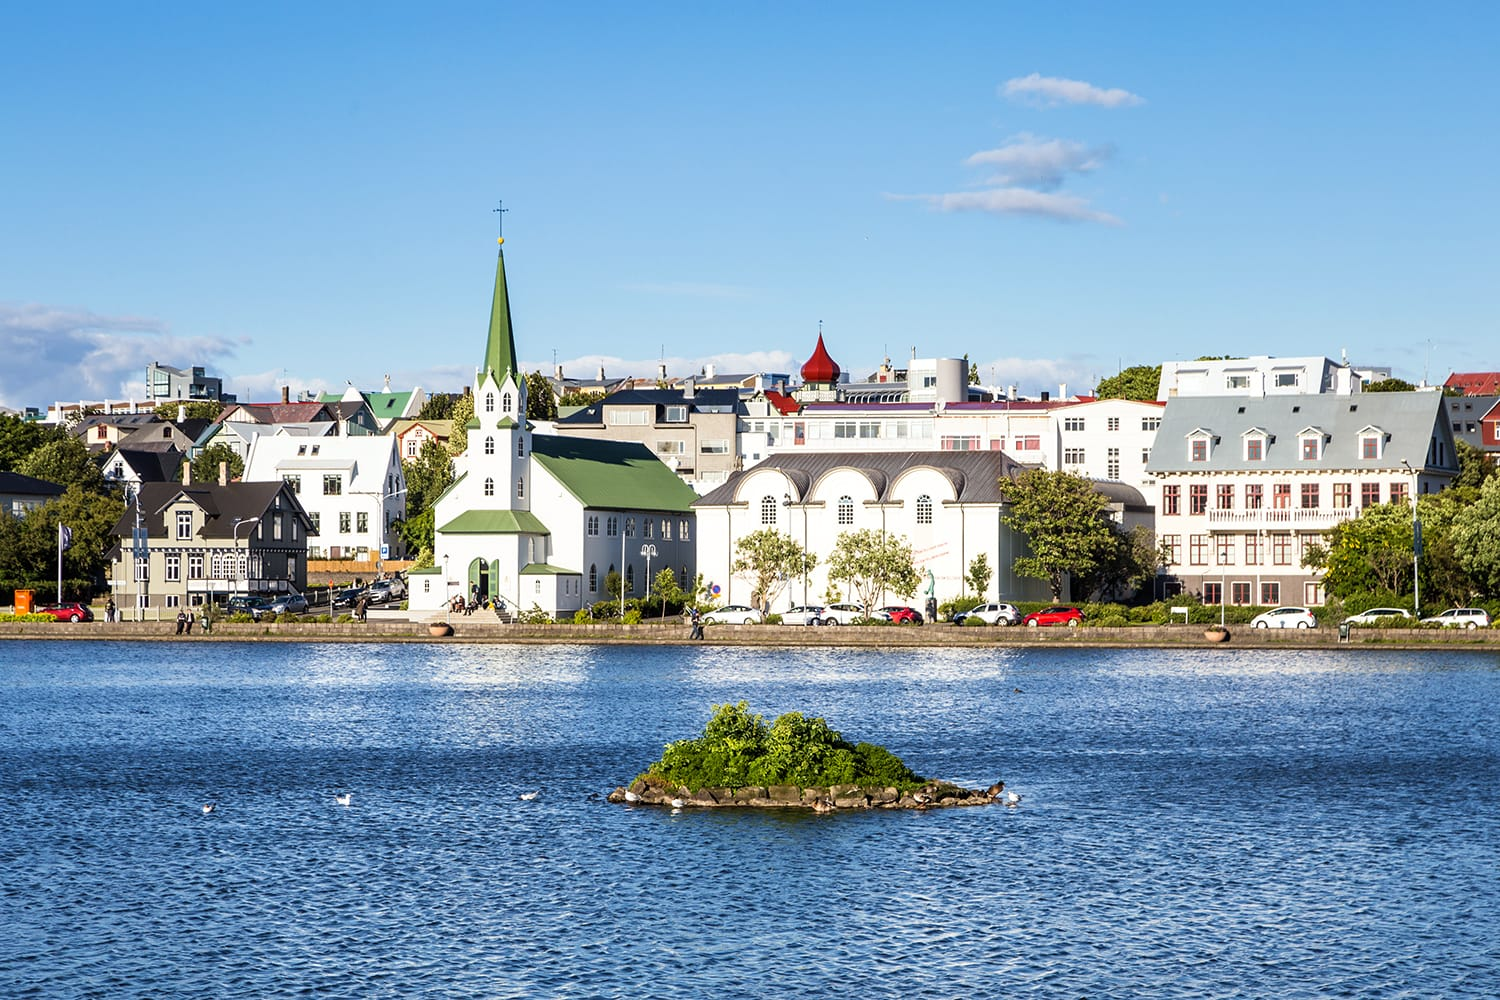 Reykjavik cityscape viewed from across the Tjornin lake in the heart of Iceland capital city on a sunny summer day.